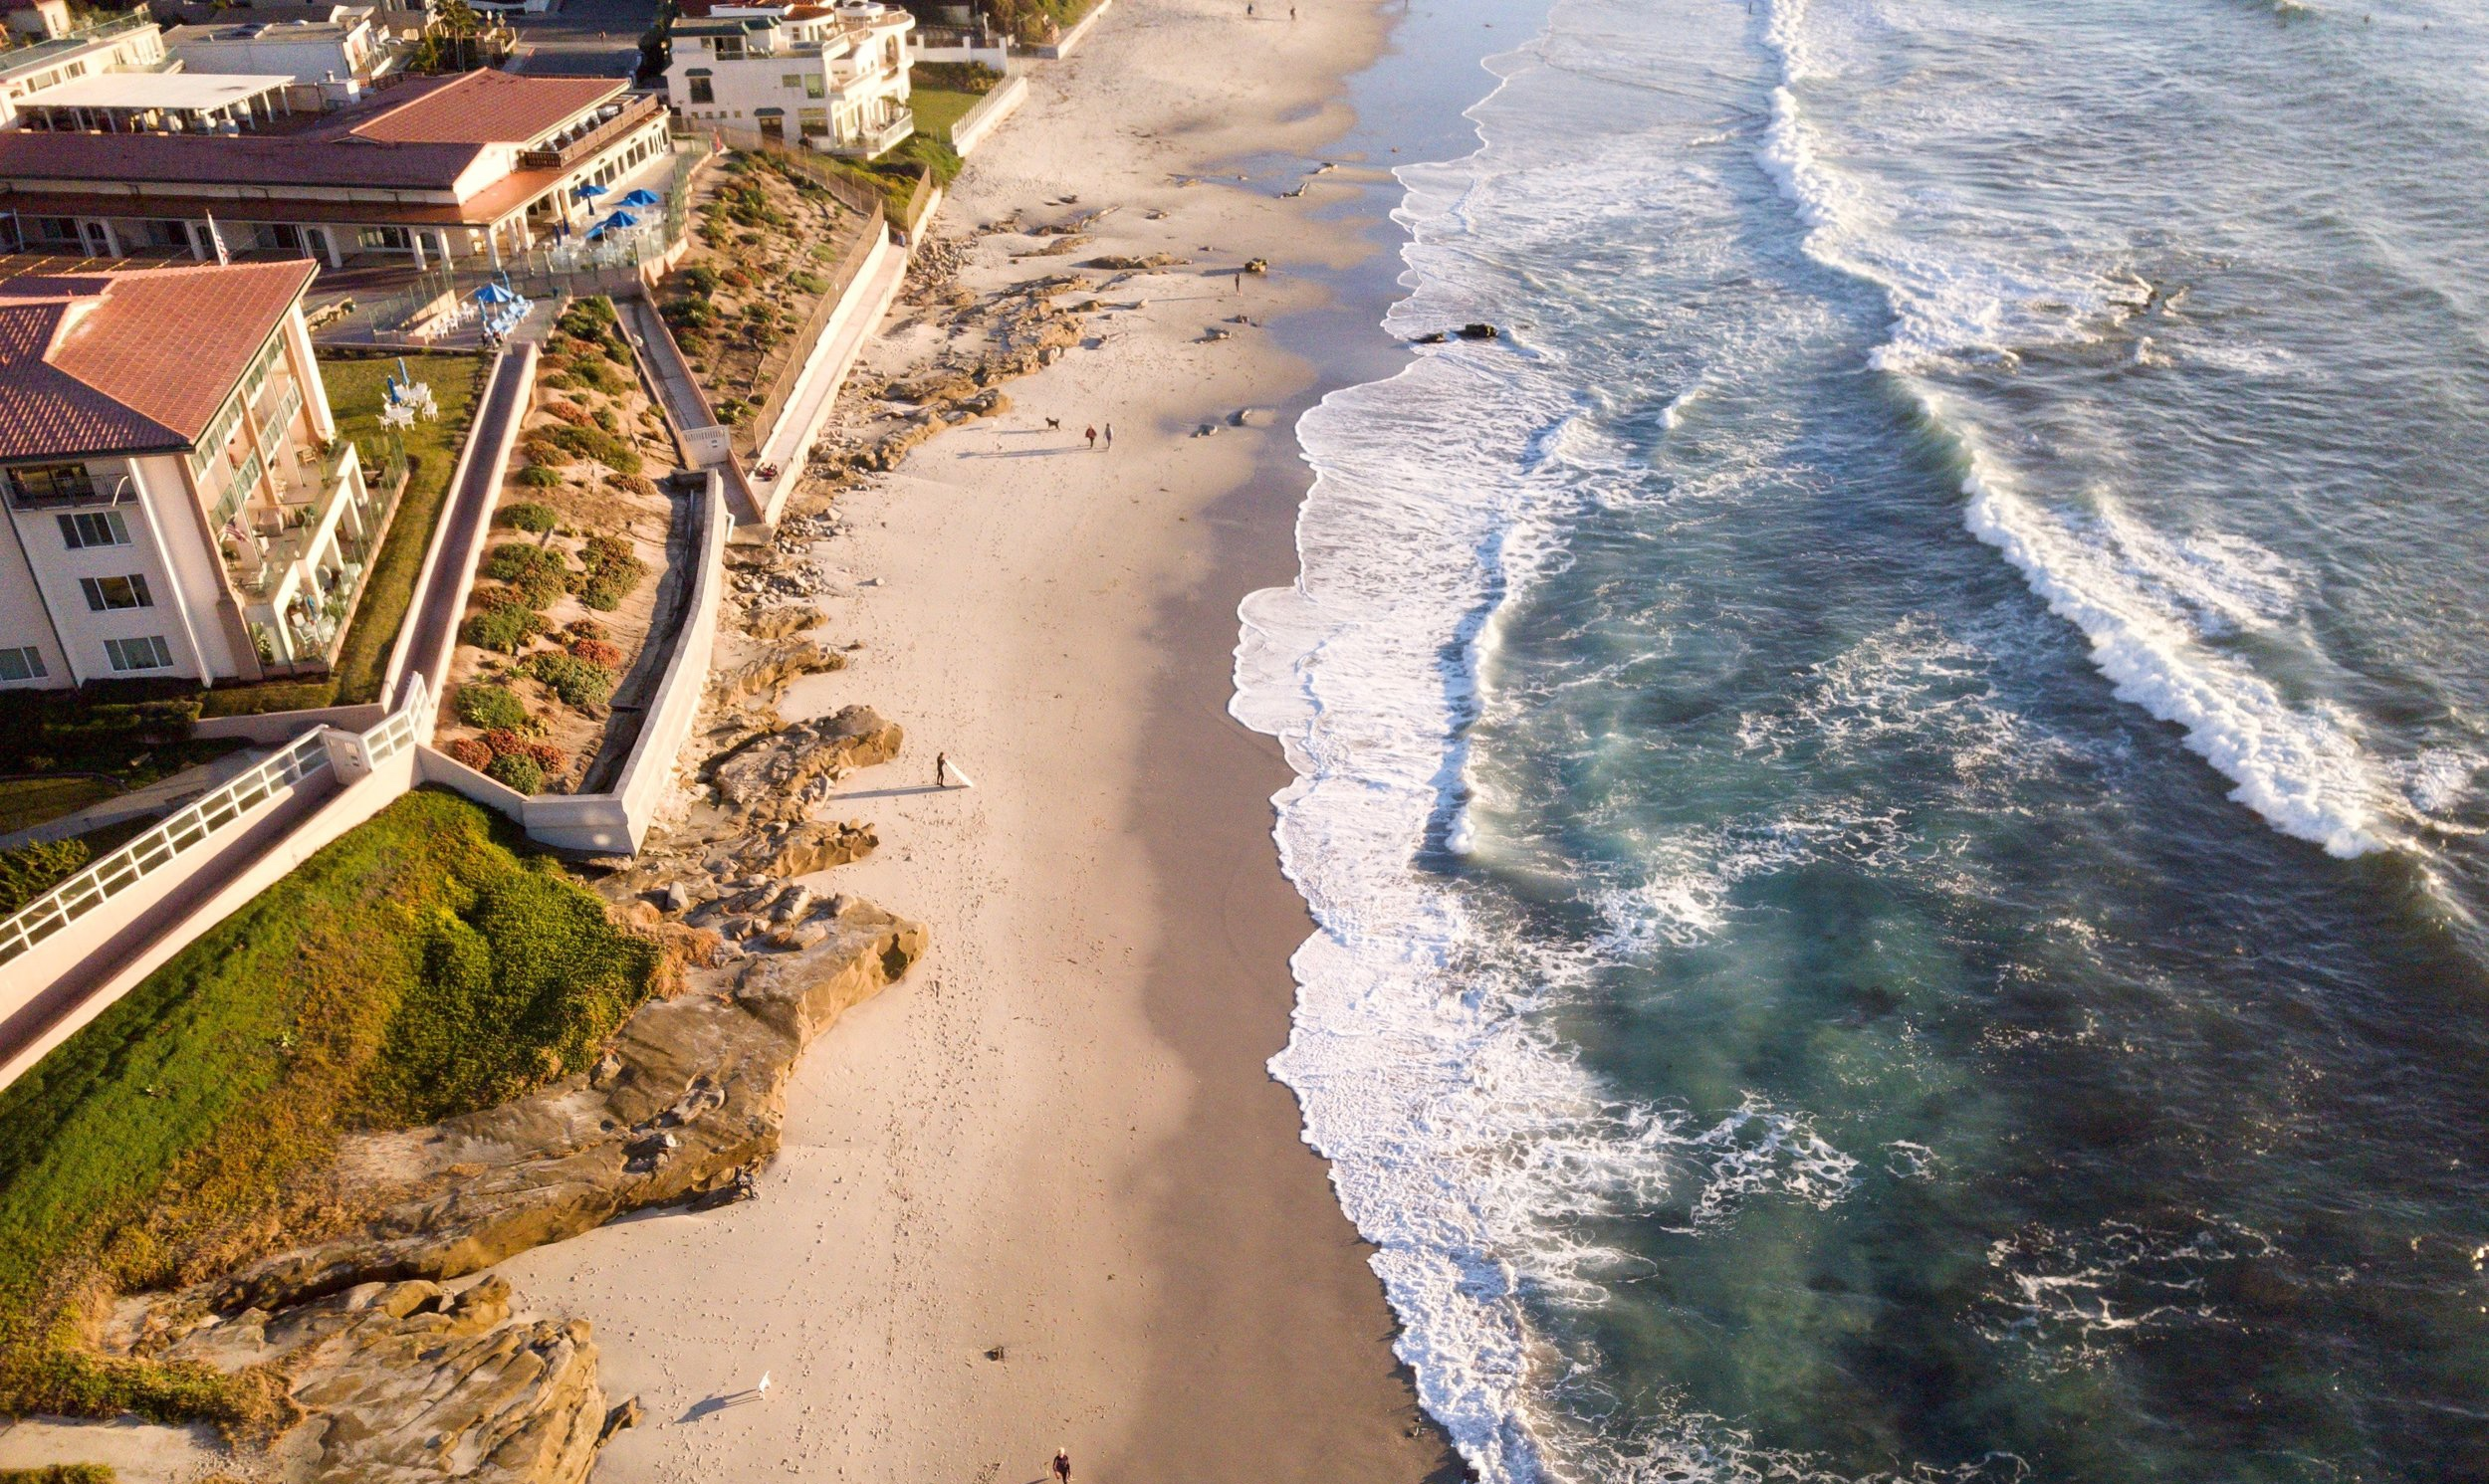 La Jolla Torrey Pine Tour - Take photos at some of the most stunning views in the San Diego area.